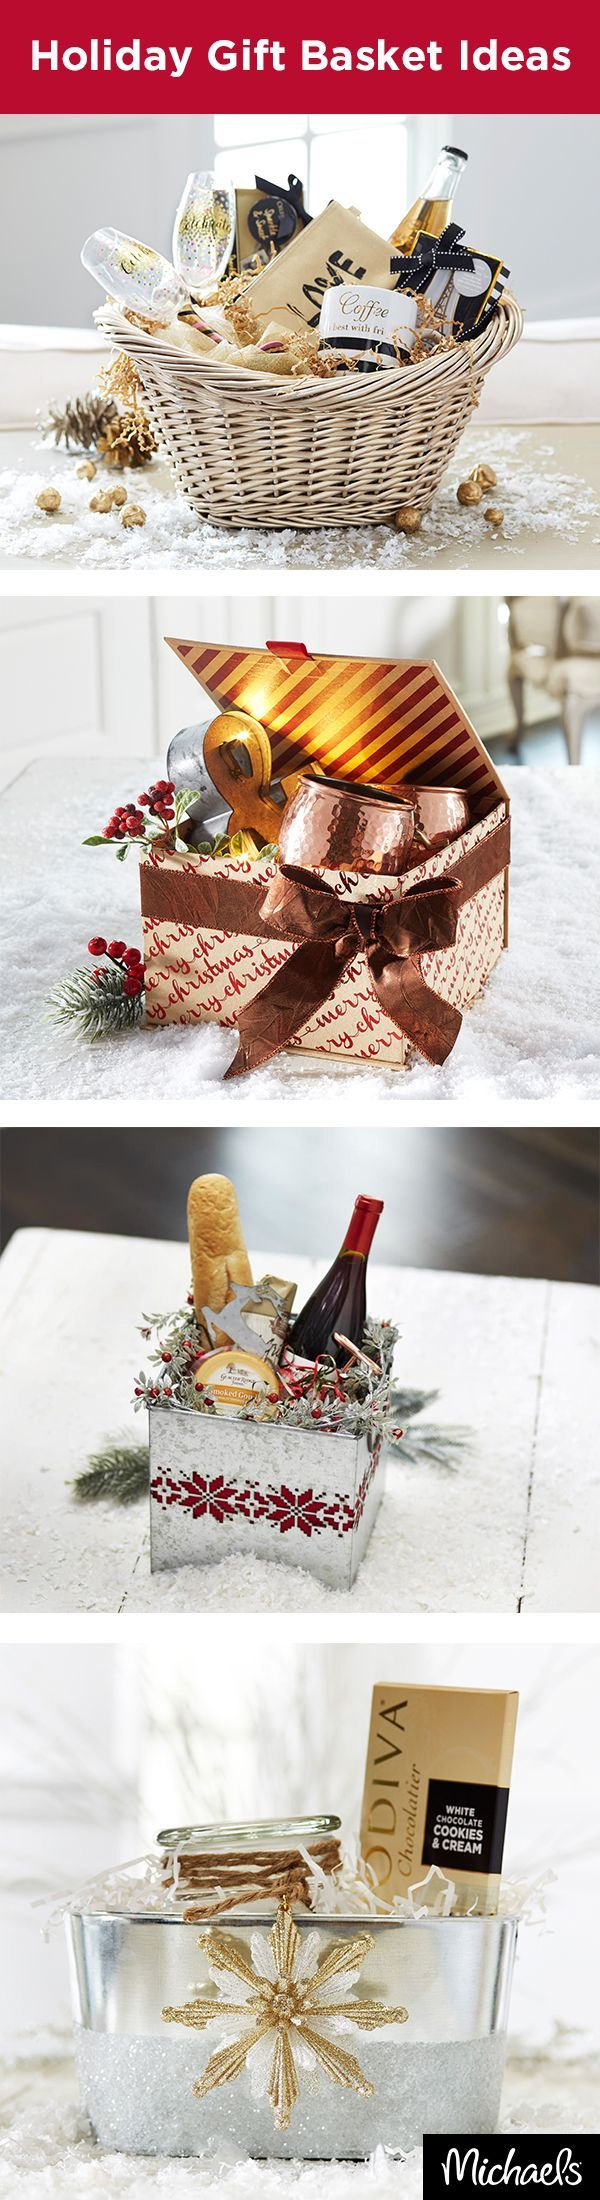 Make gift giving personal with these fun gift baskets fill them to make gift giving personal with these fun gift baskets fill them to the brim with solutioingenieria Gallery